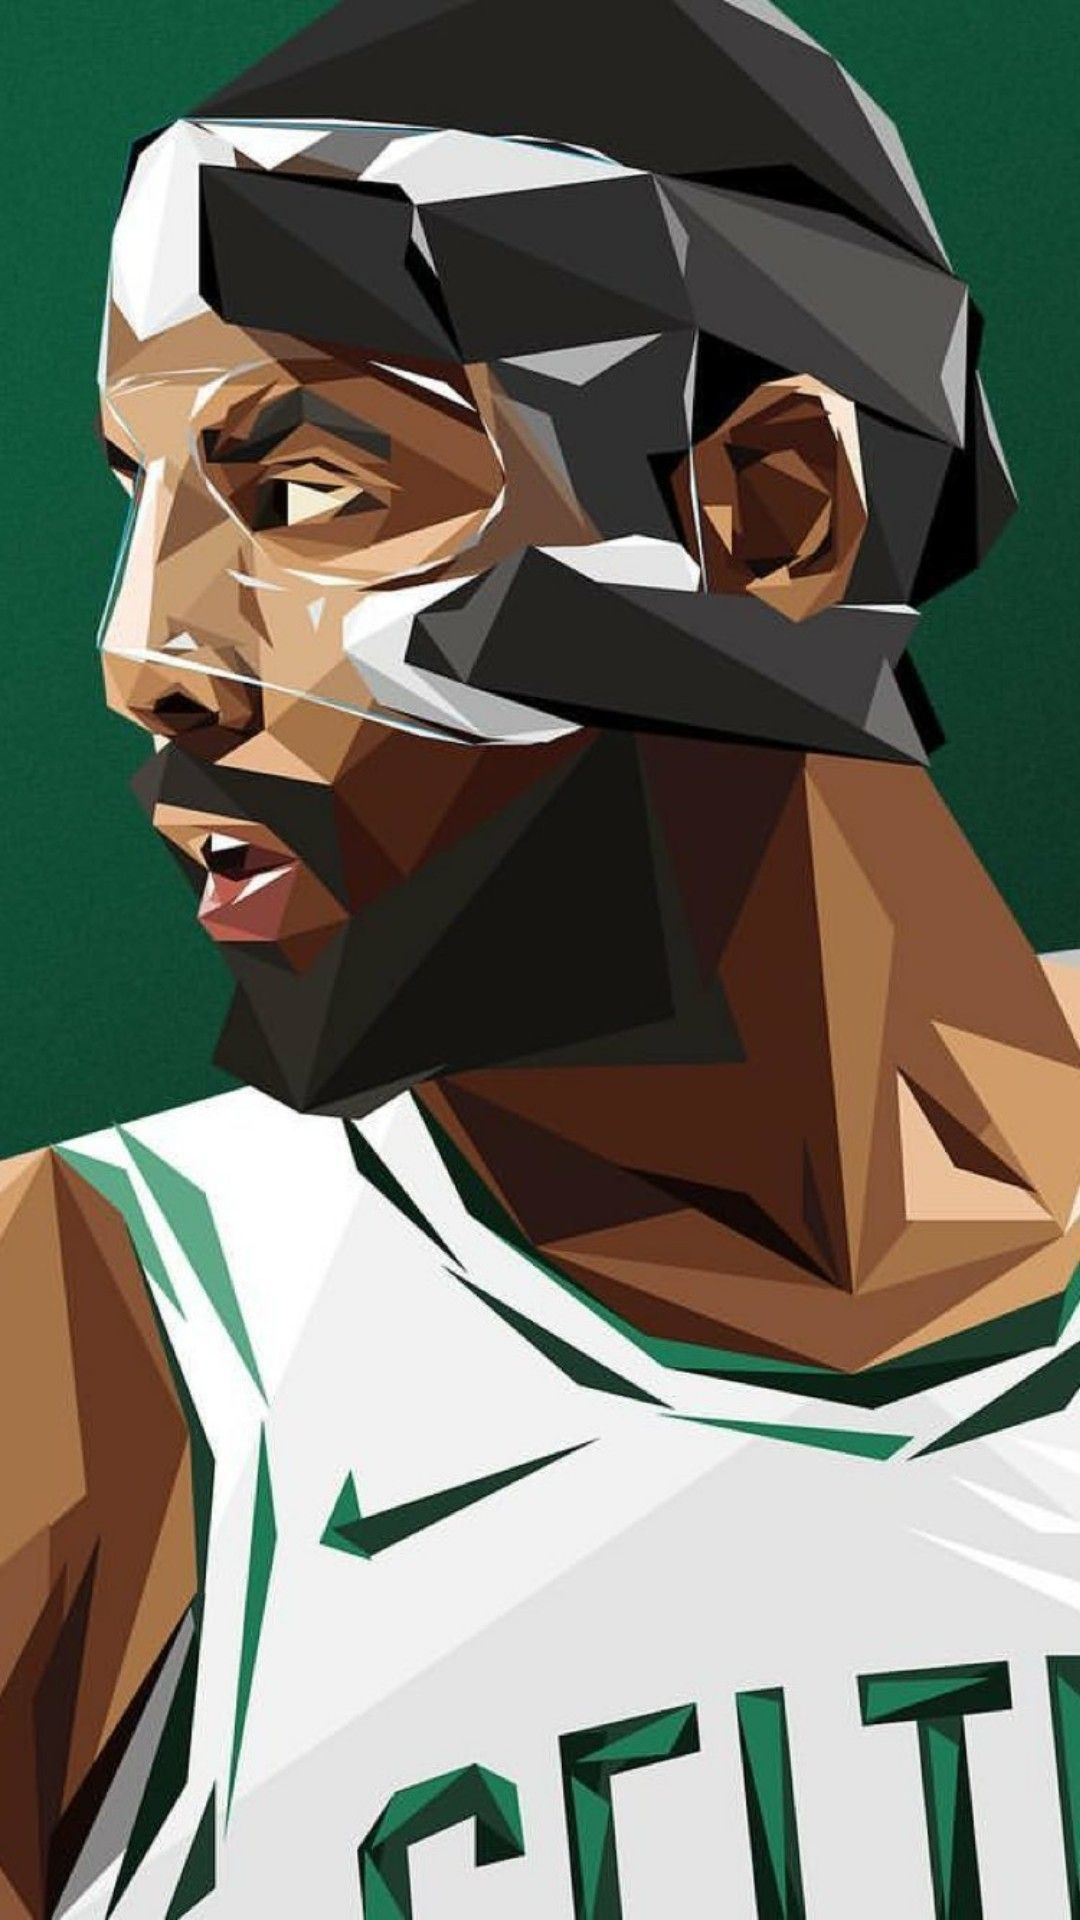 Cartoon Nba Wallpaper Hd In 2020 Nba Mvp Irving Wallpapers Nba Wallpapers